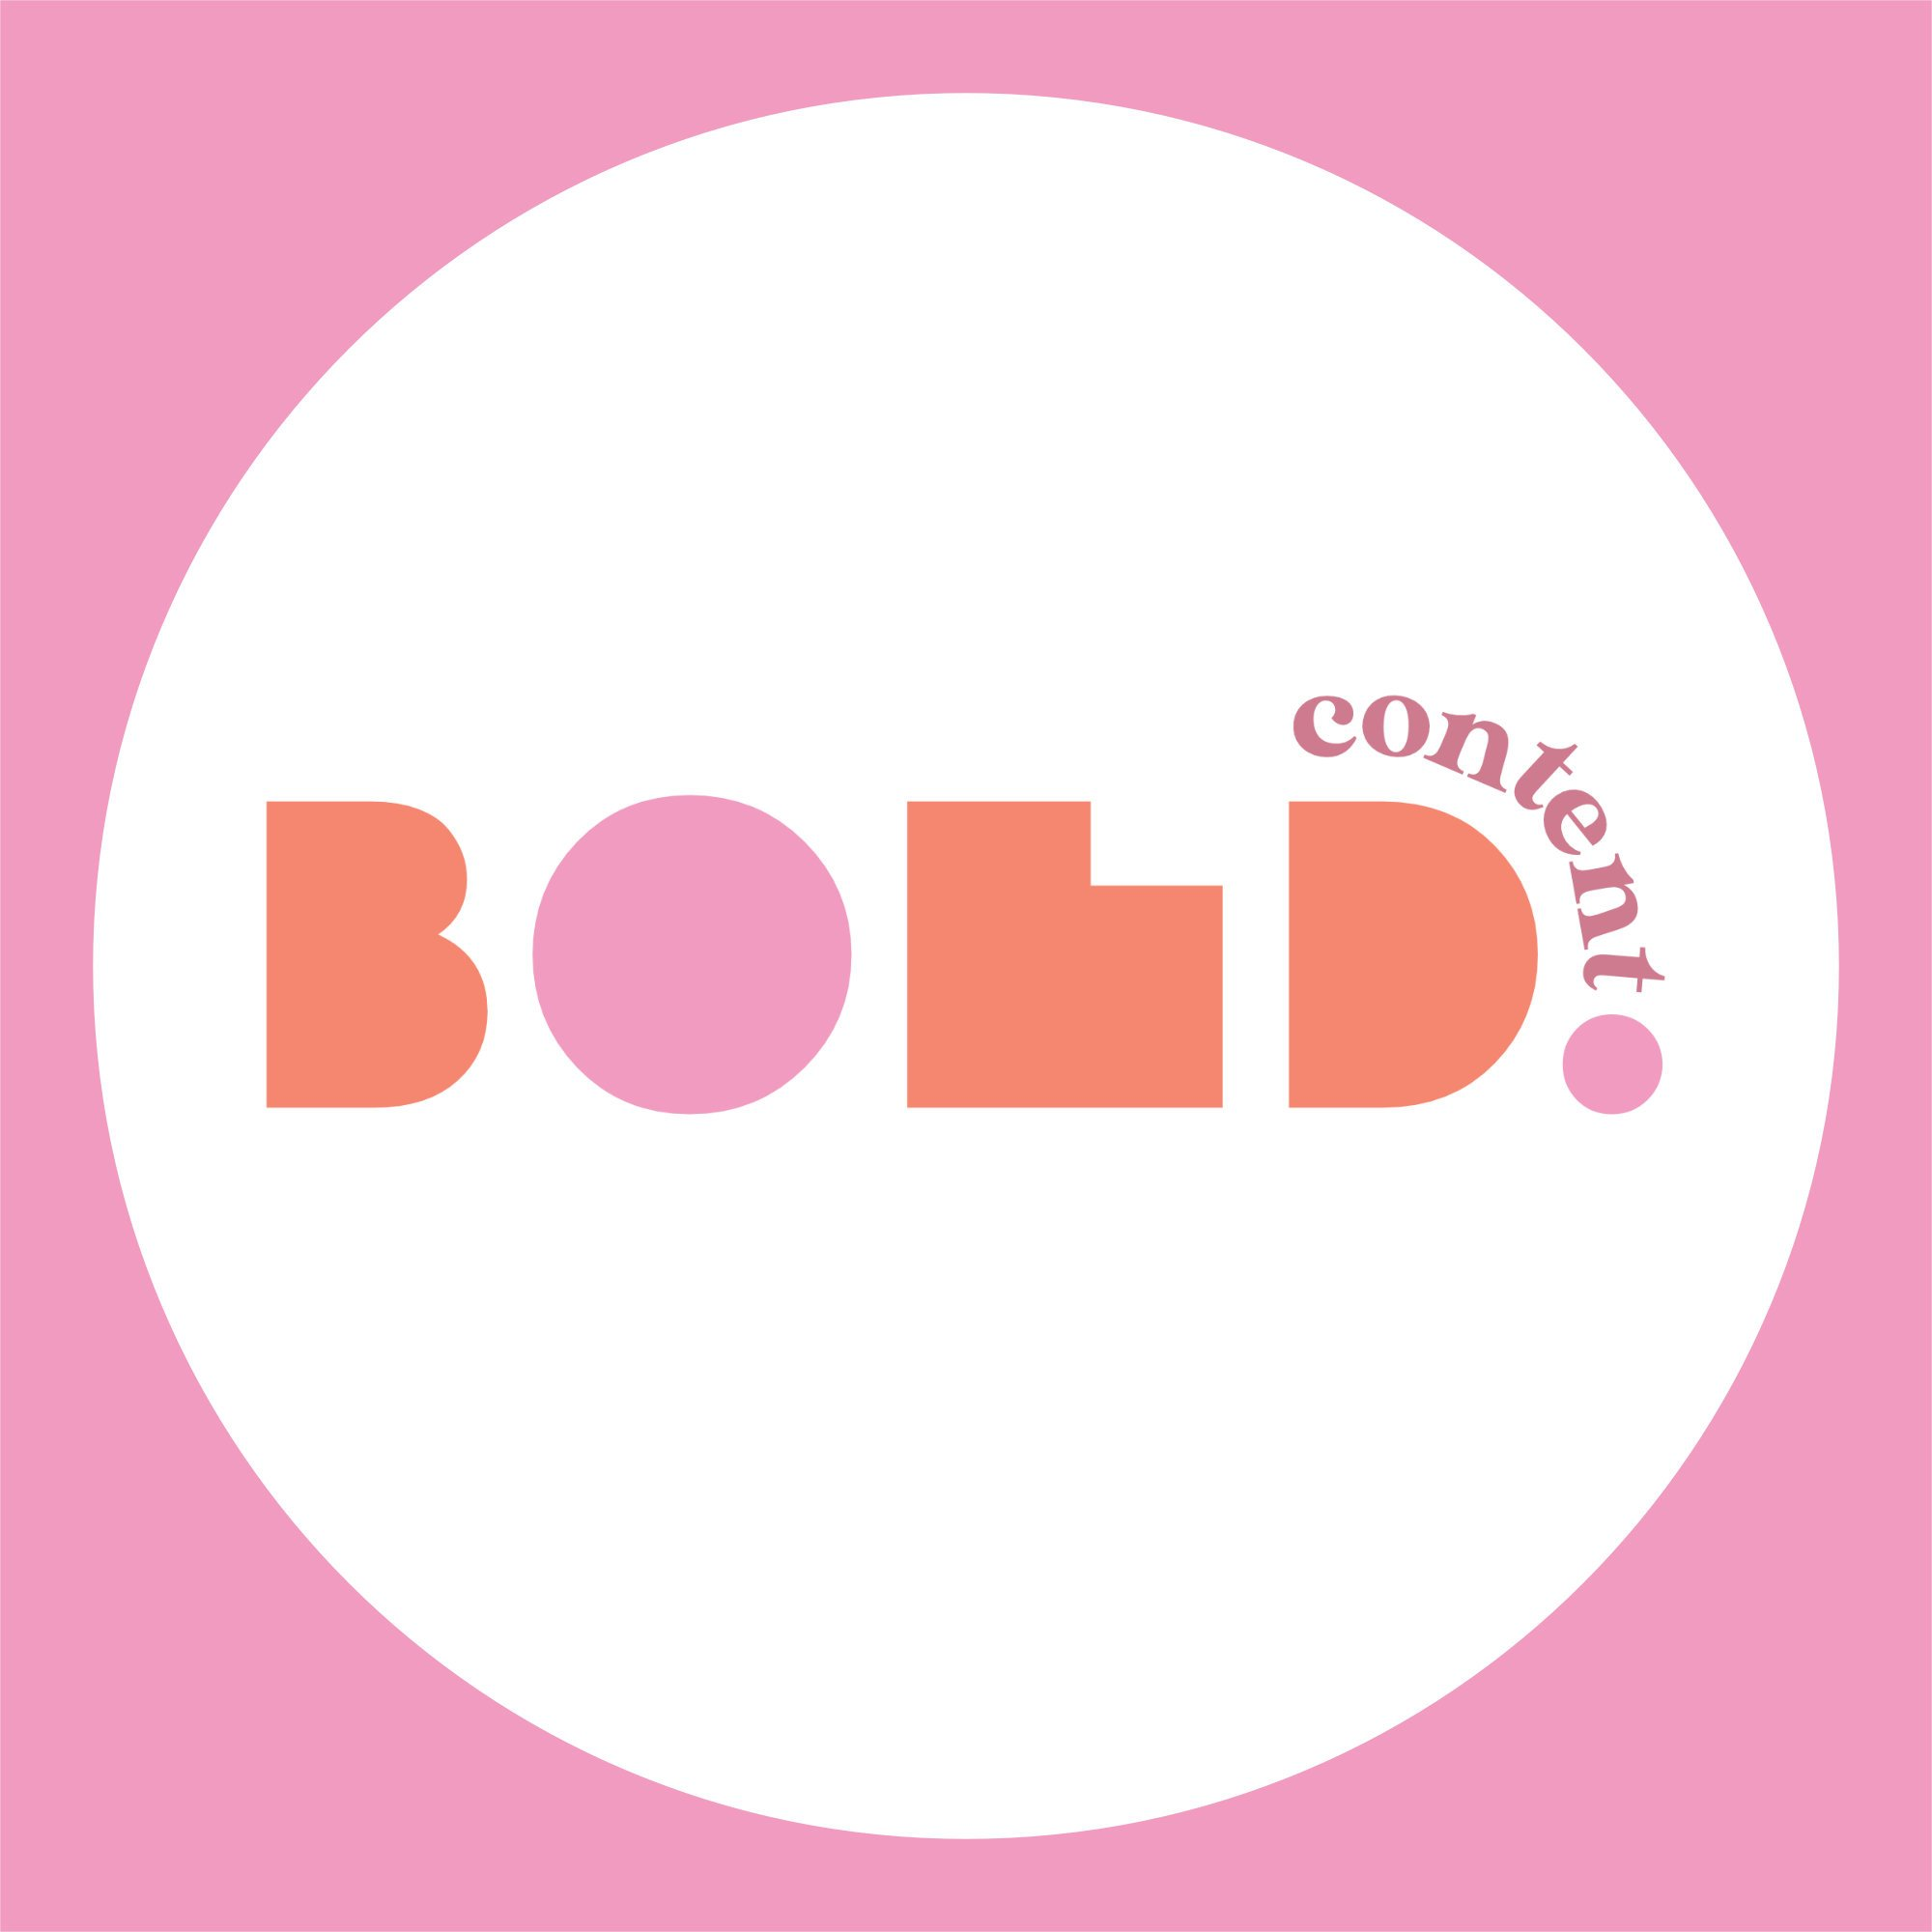 Bold Content logo in thick orange and pink lettering, on white circle with pink background